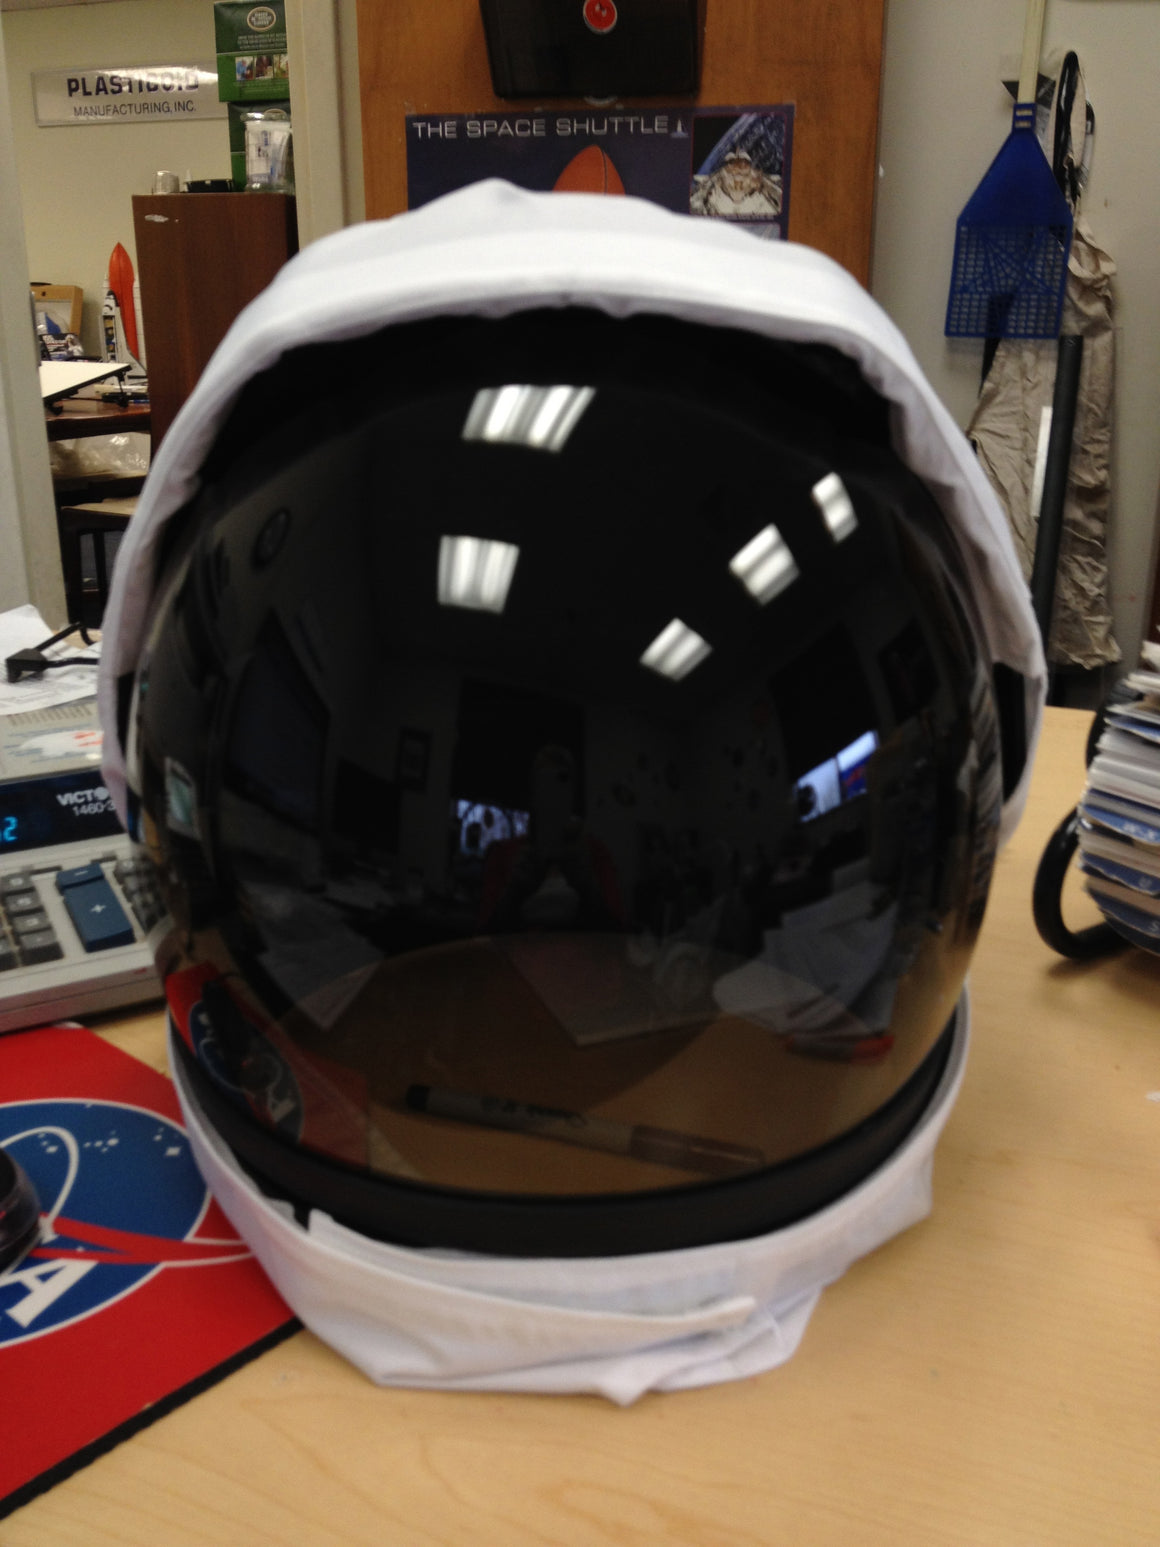 Astronaut Space Helmet Replica